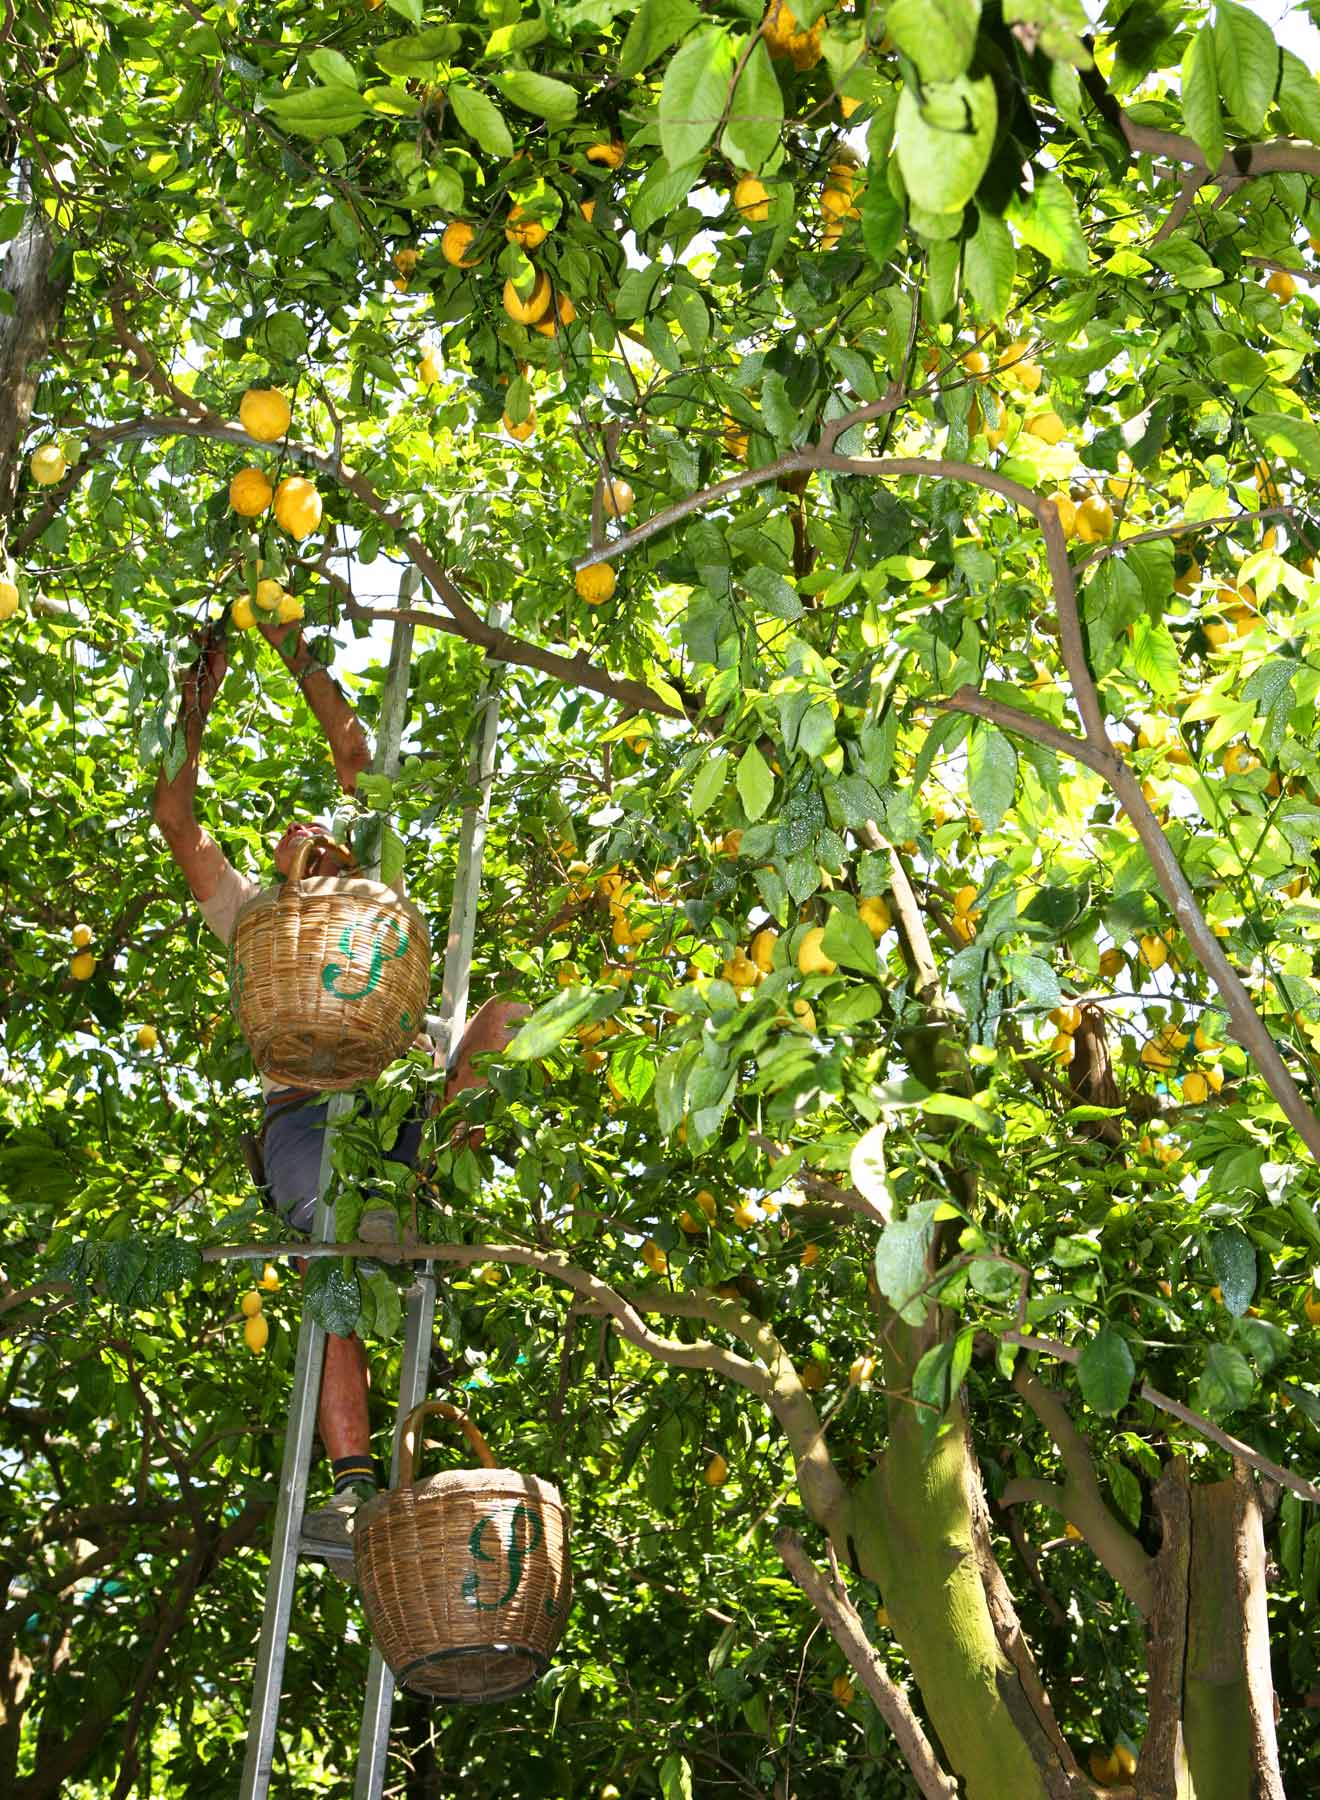 Harvesting Lemons in the Trees, what's chilling right now